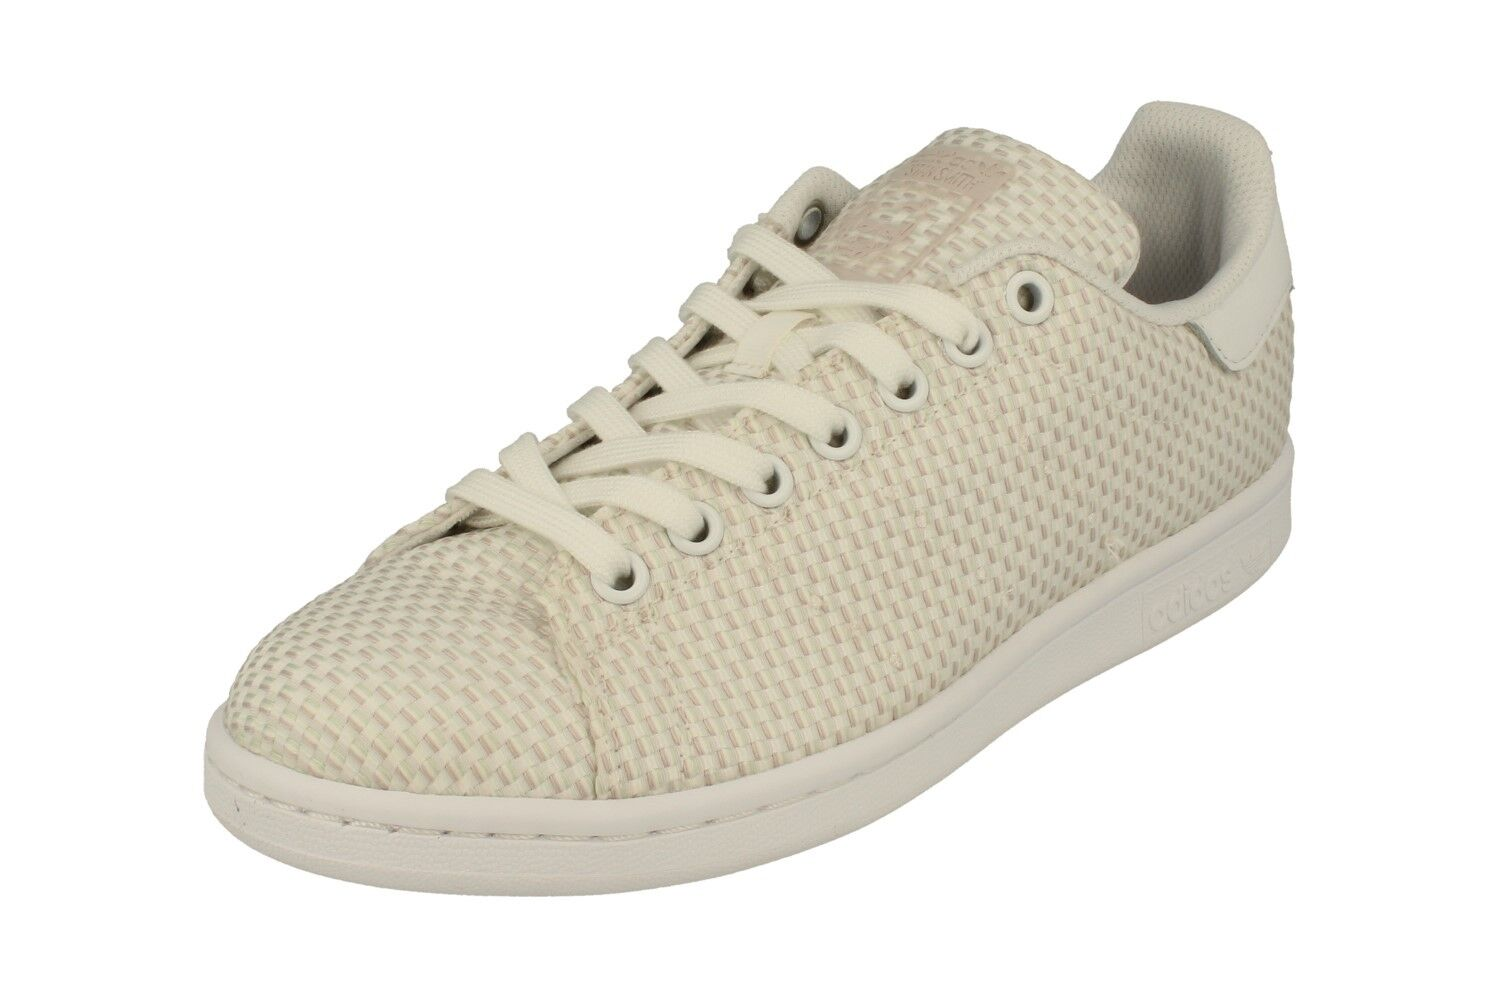 52bc94989a3 Adidas Originals Stan Smith Mens Trainers shoes CG3789 Sneakers ...